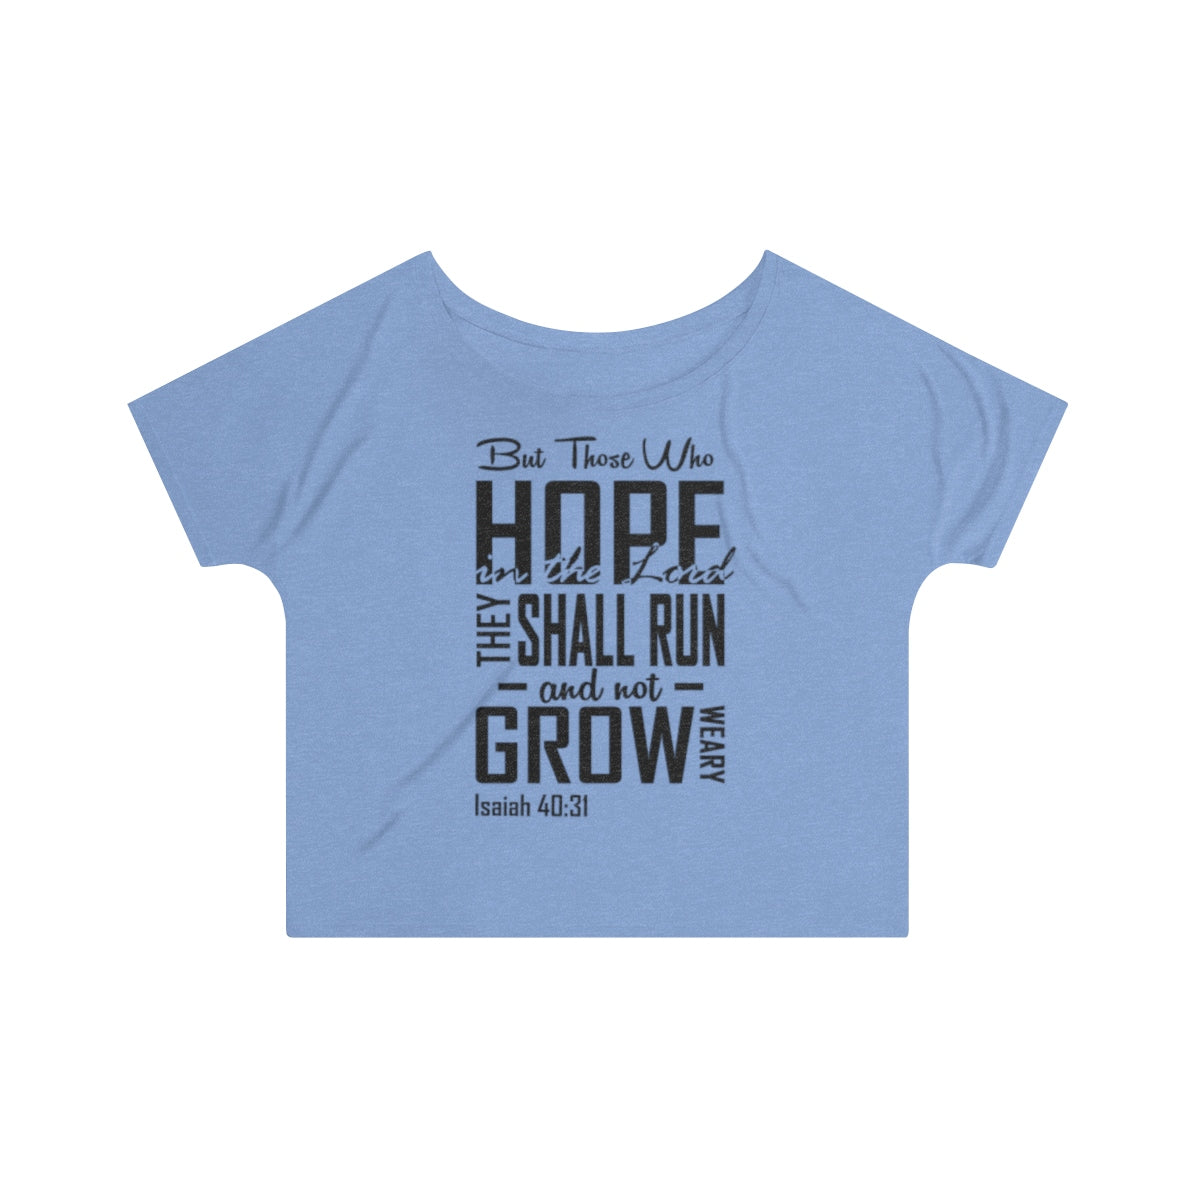 They Shall Run & Not Grow Weary Isaiah 40:31 Christian Slouchy Top